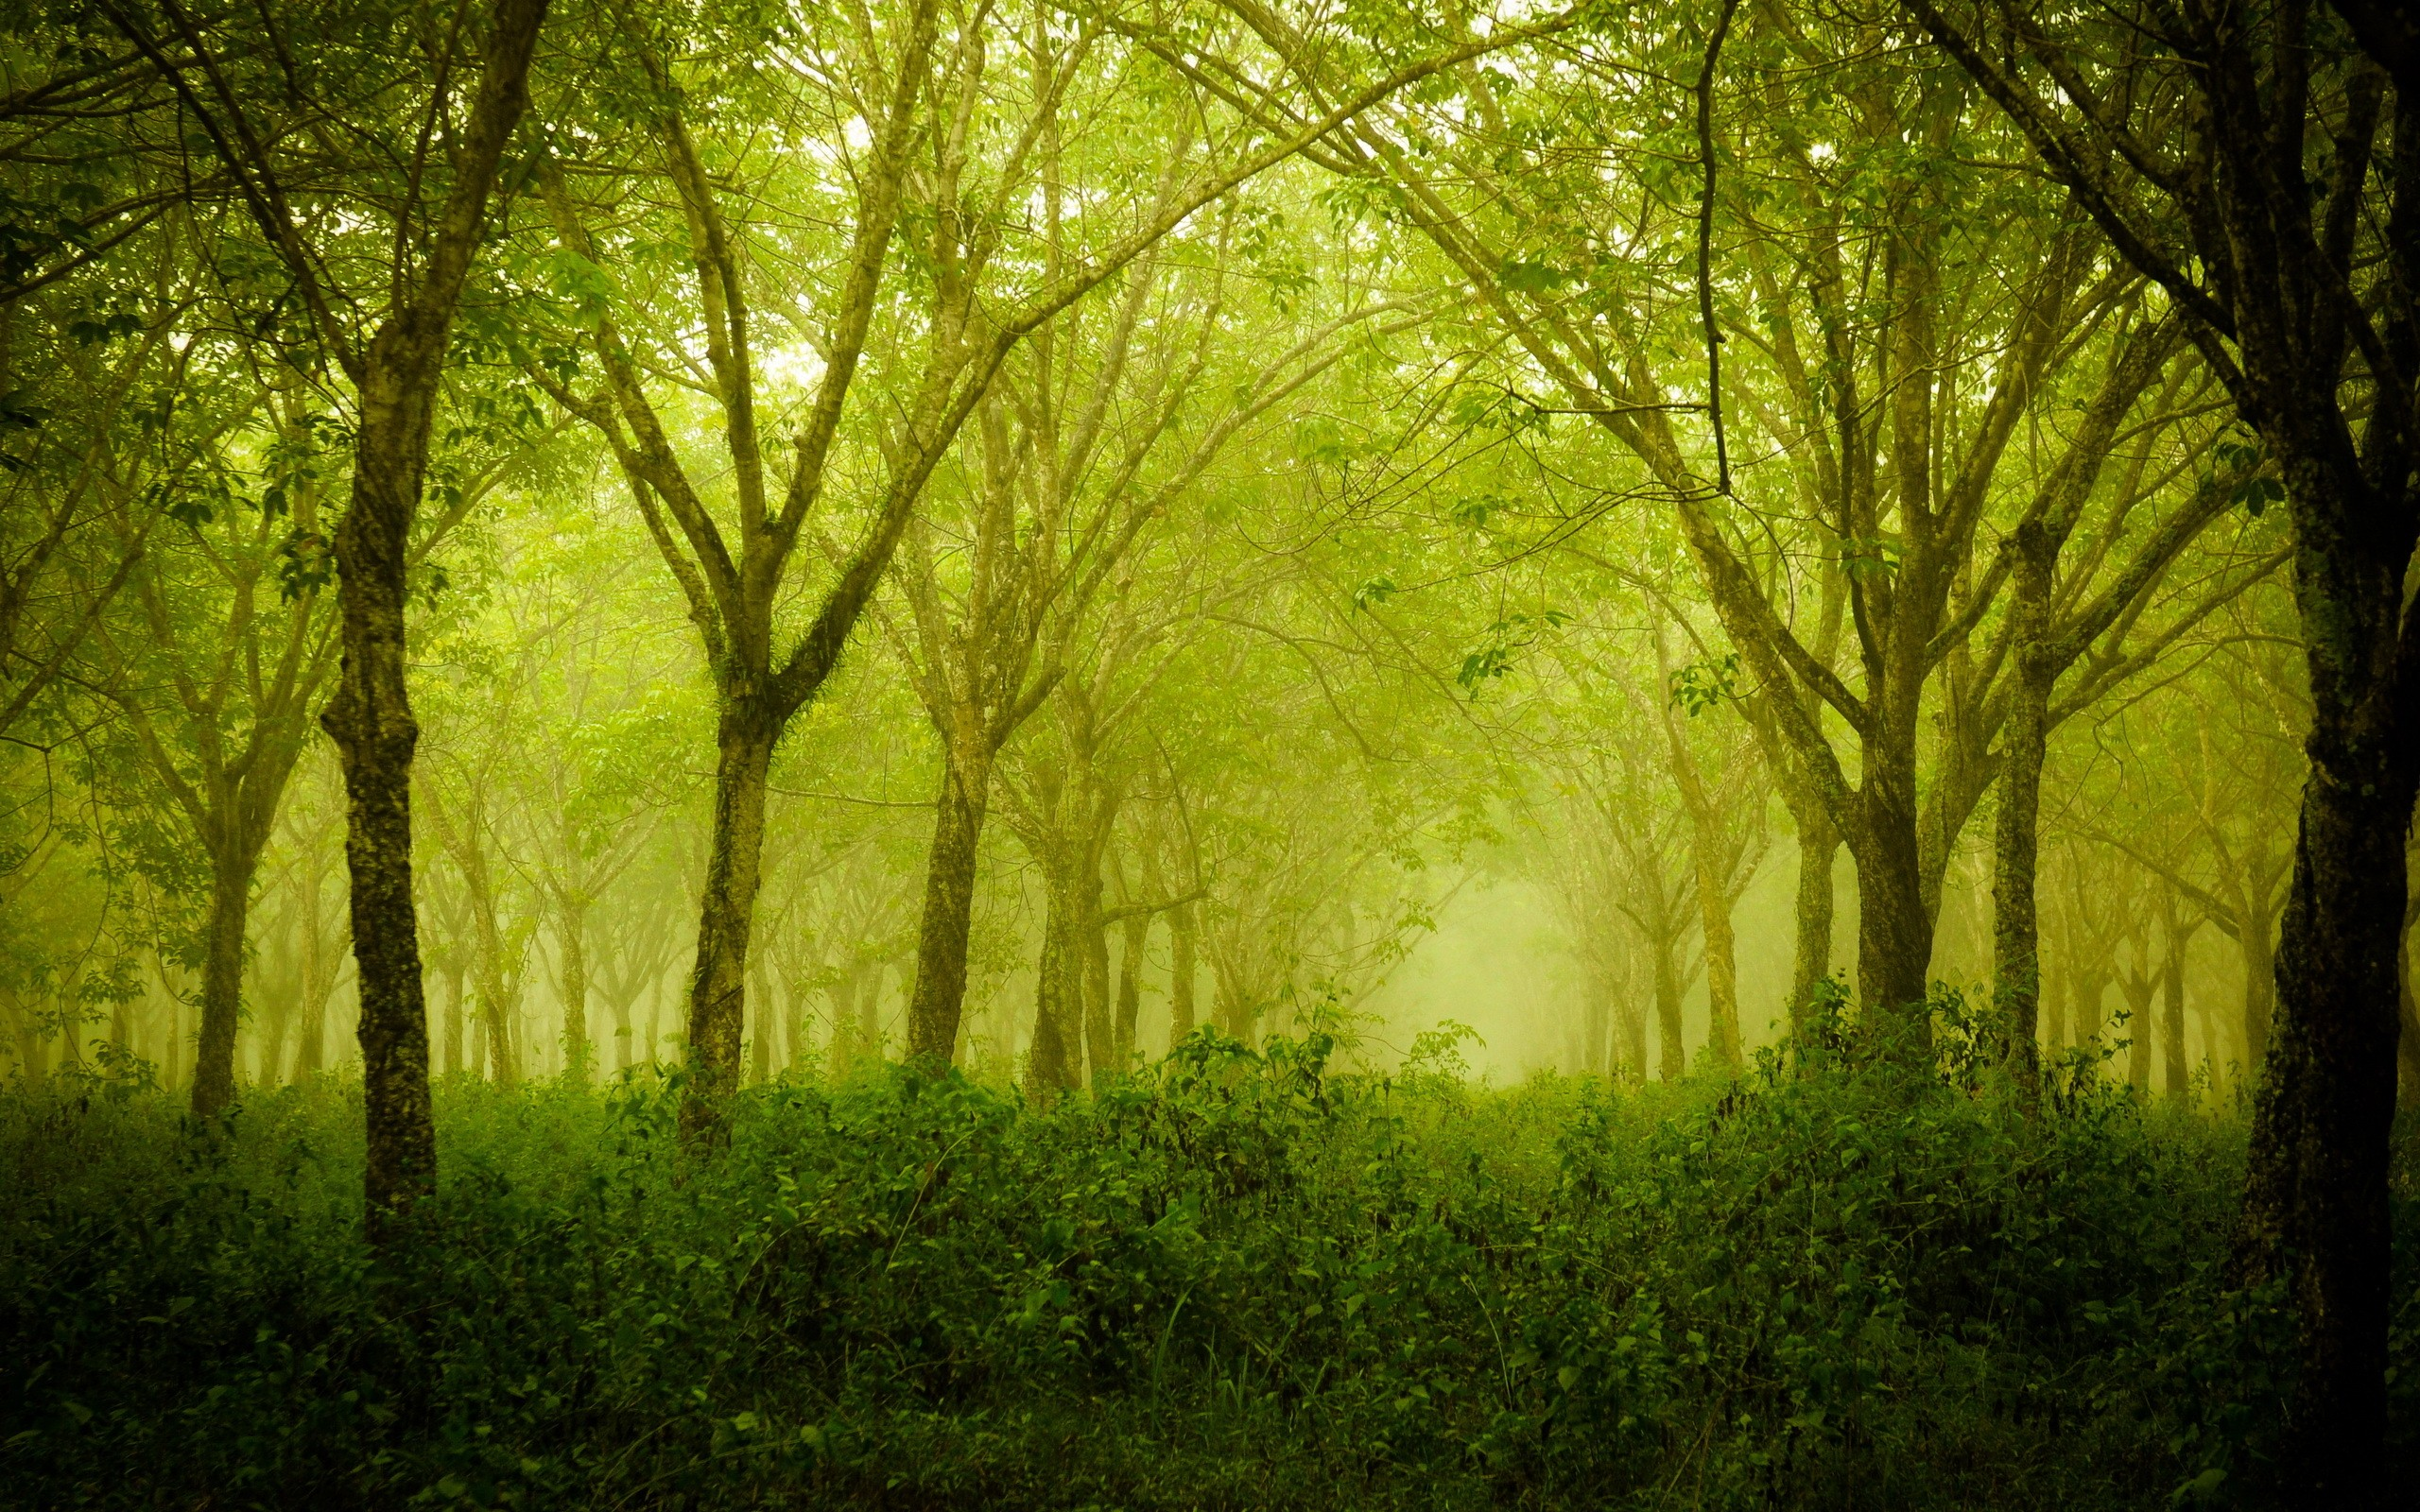 Thick forest photo